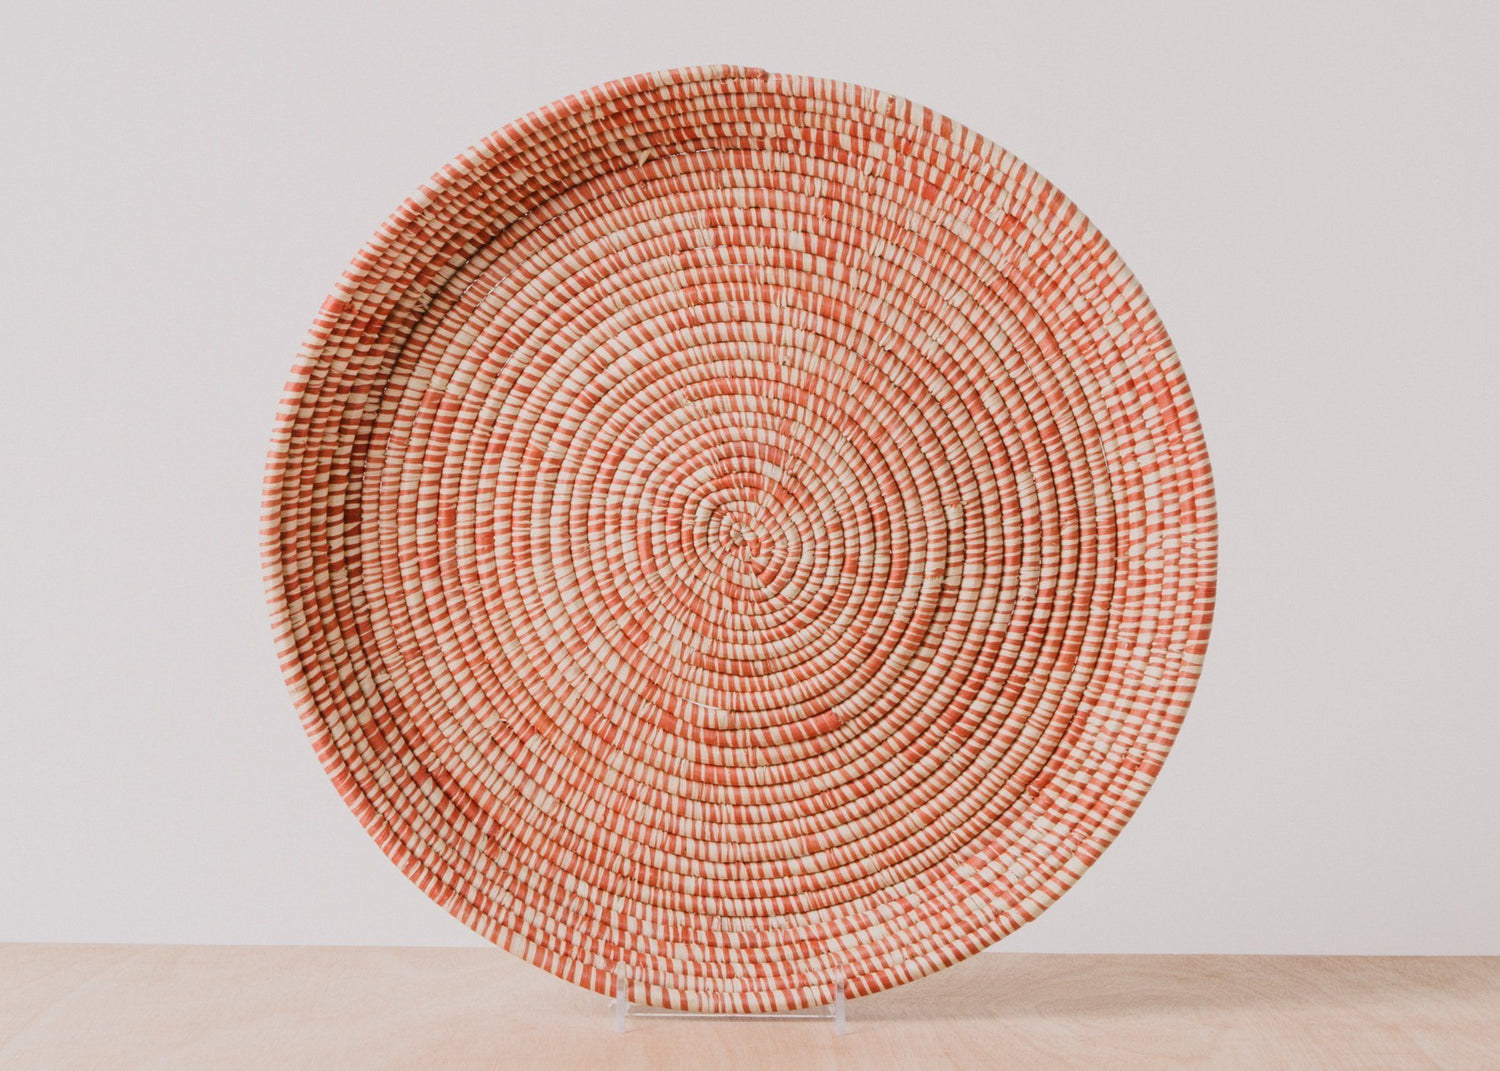 KAZI Heathered Burnt Orange Round Raffia Tray KAZI